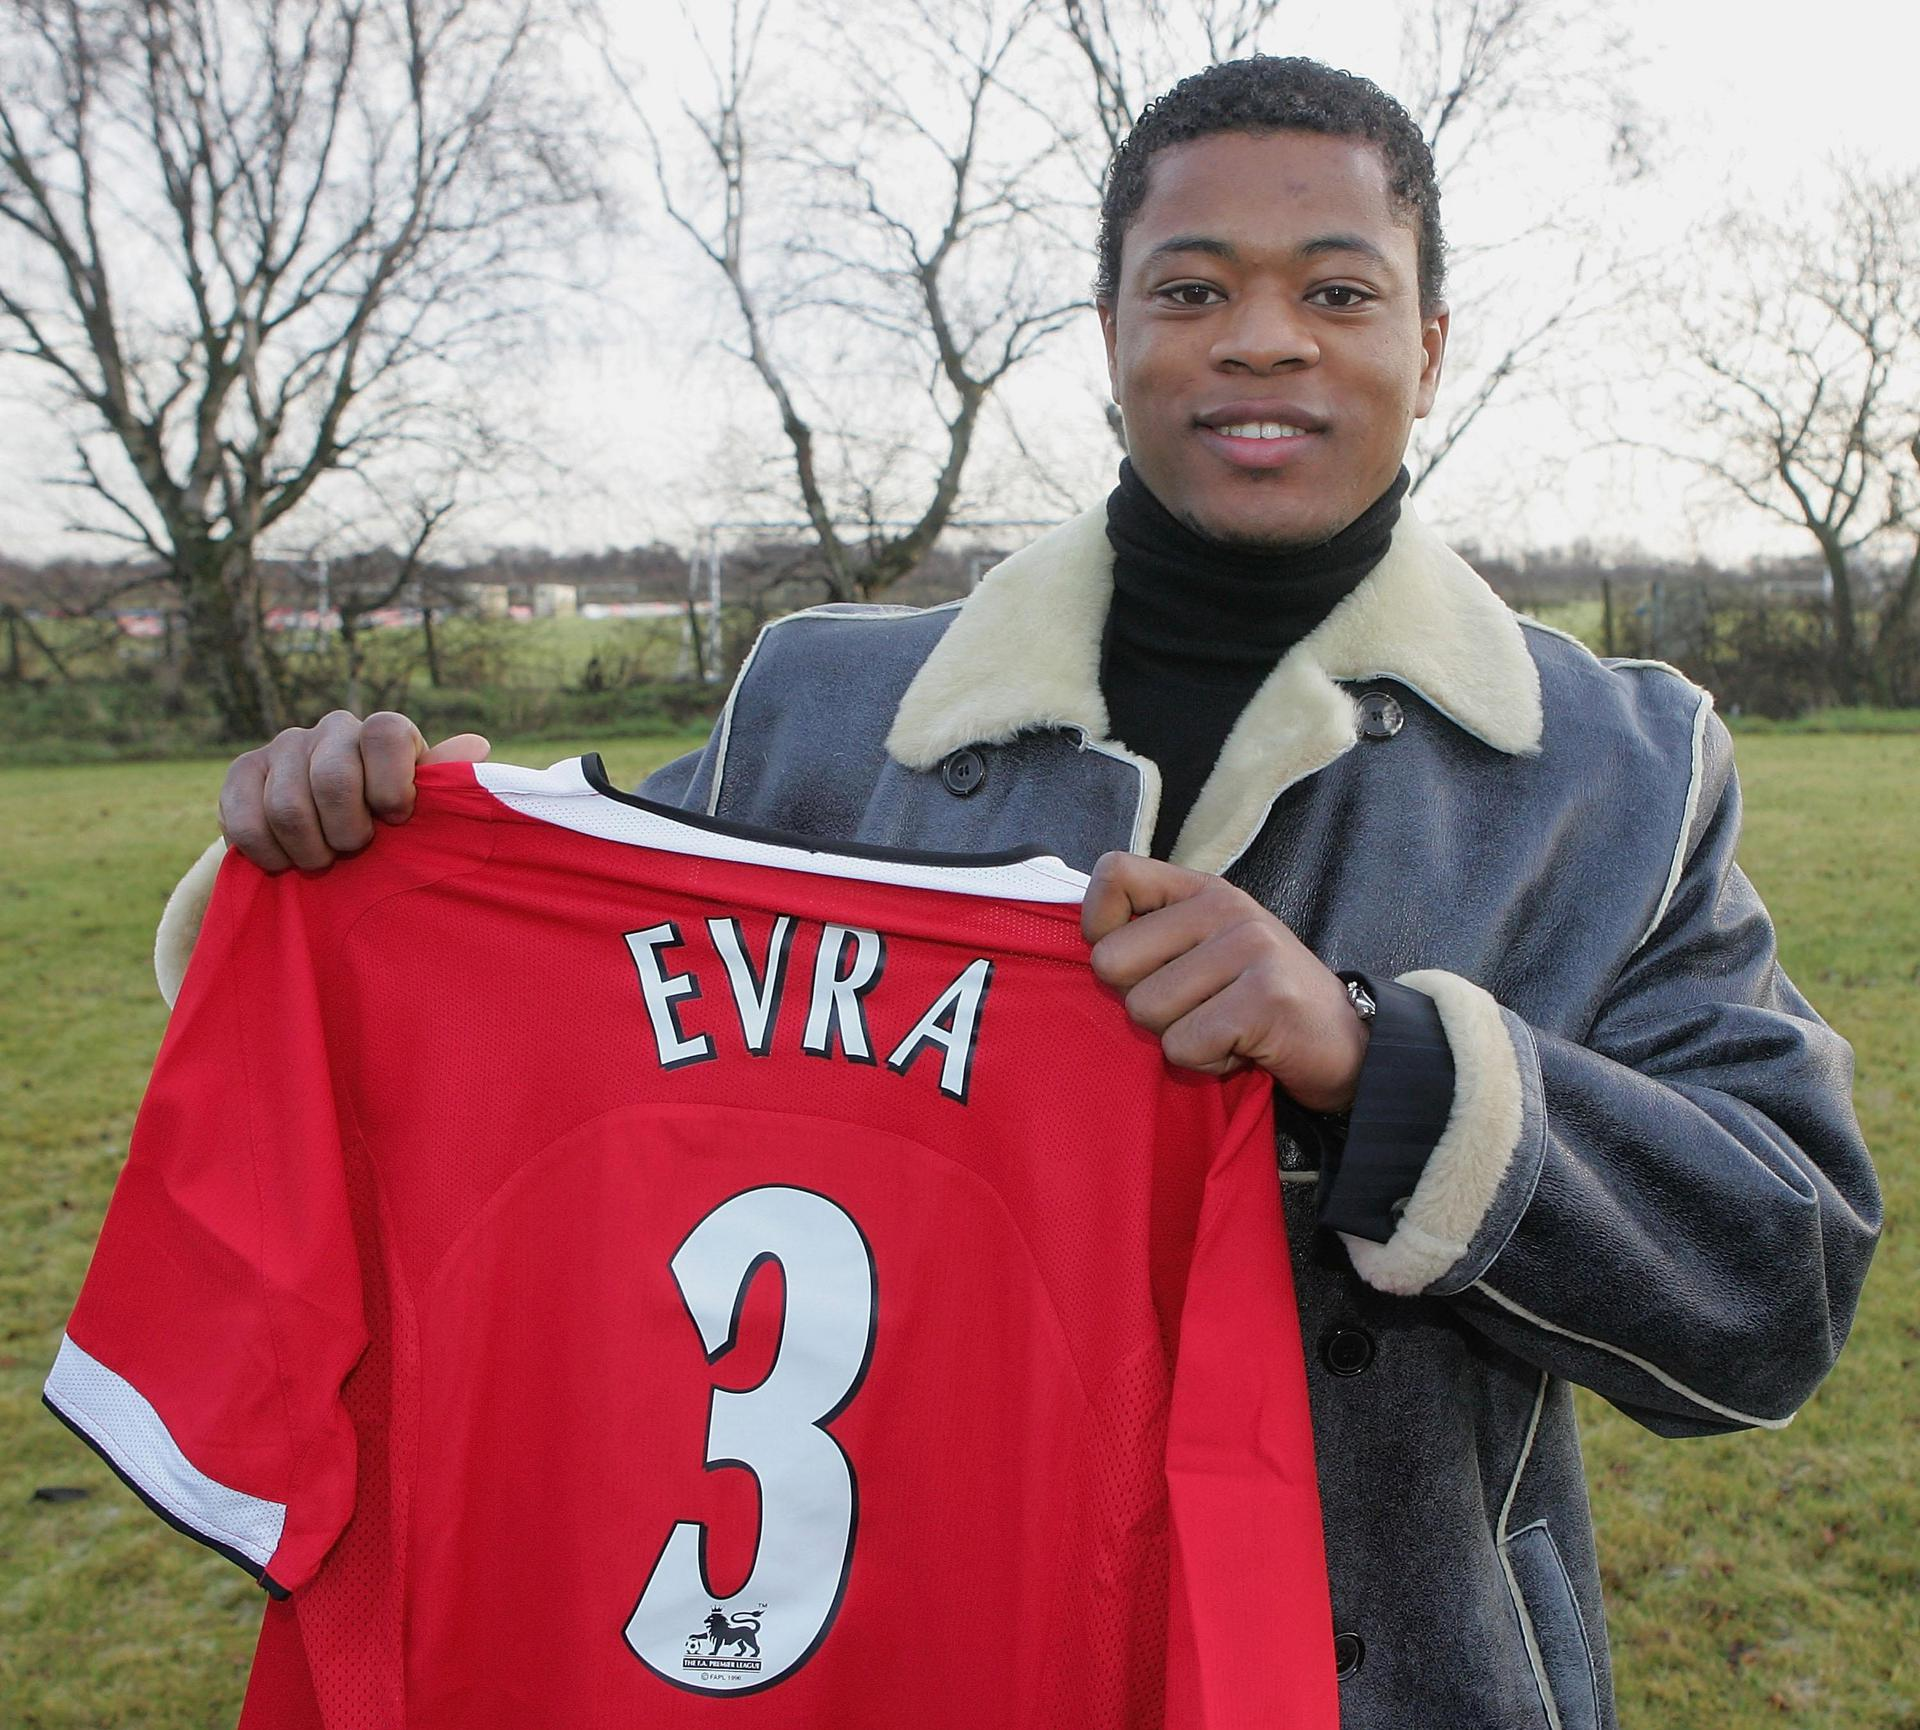 Patrice Evra holds up a United shirt.